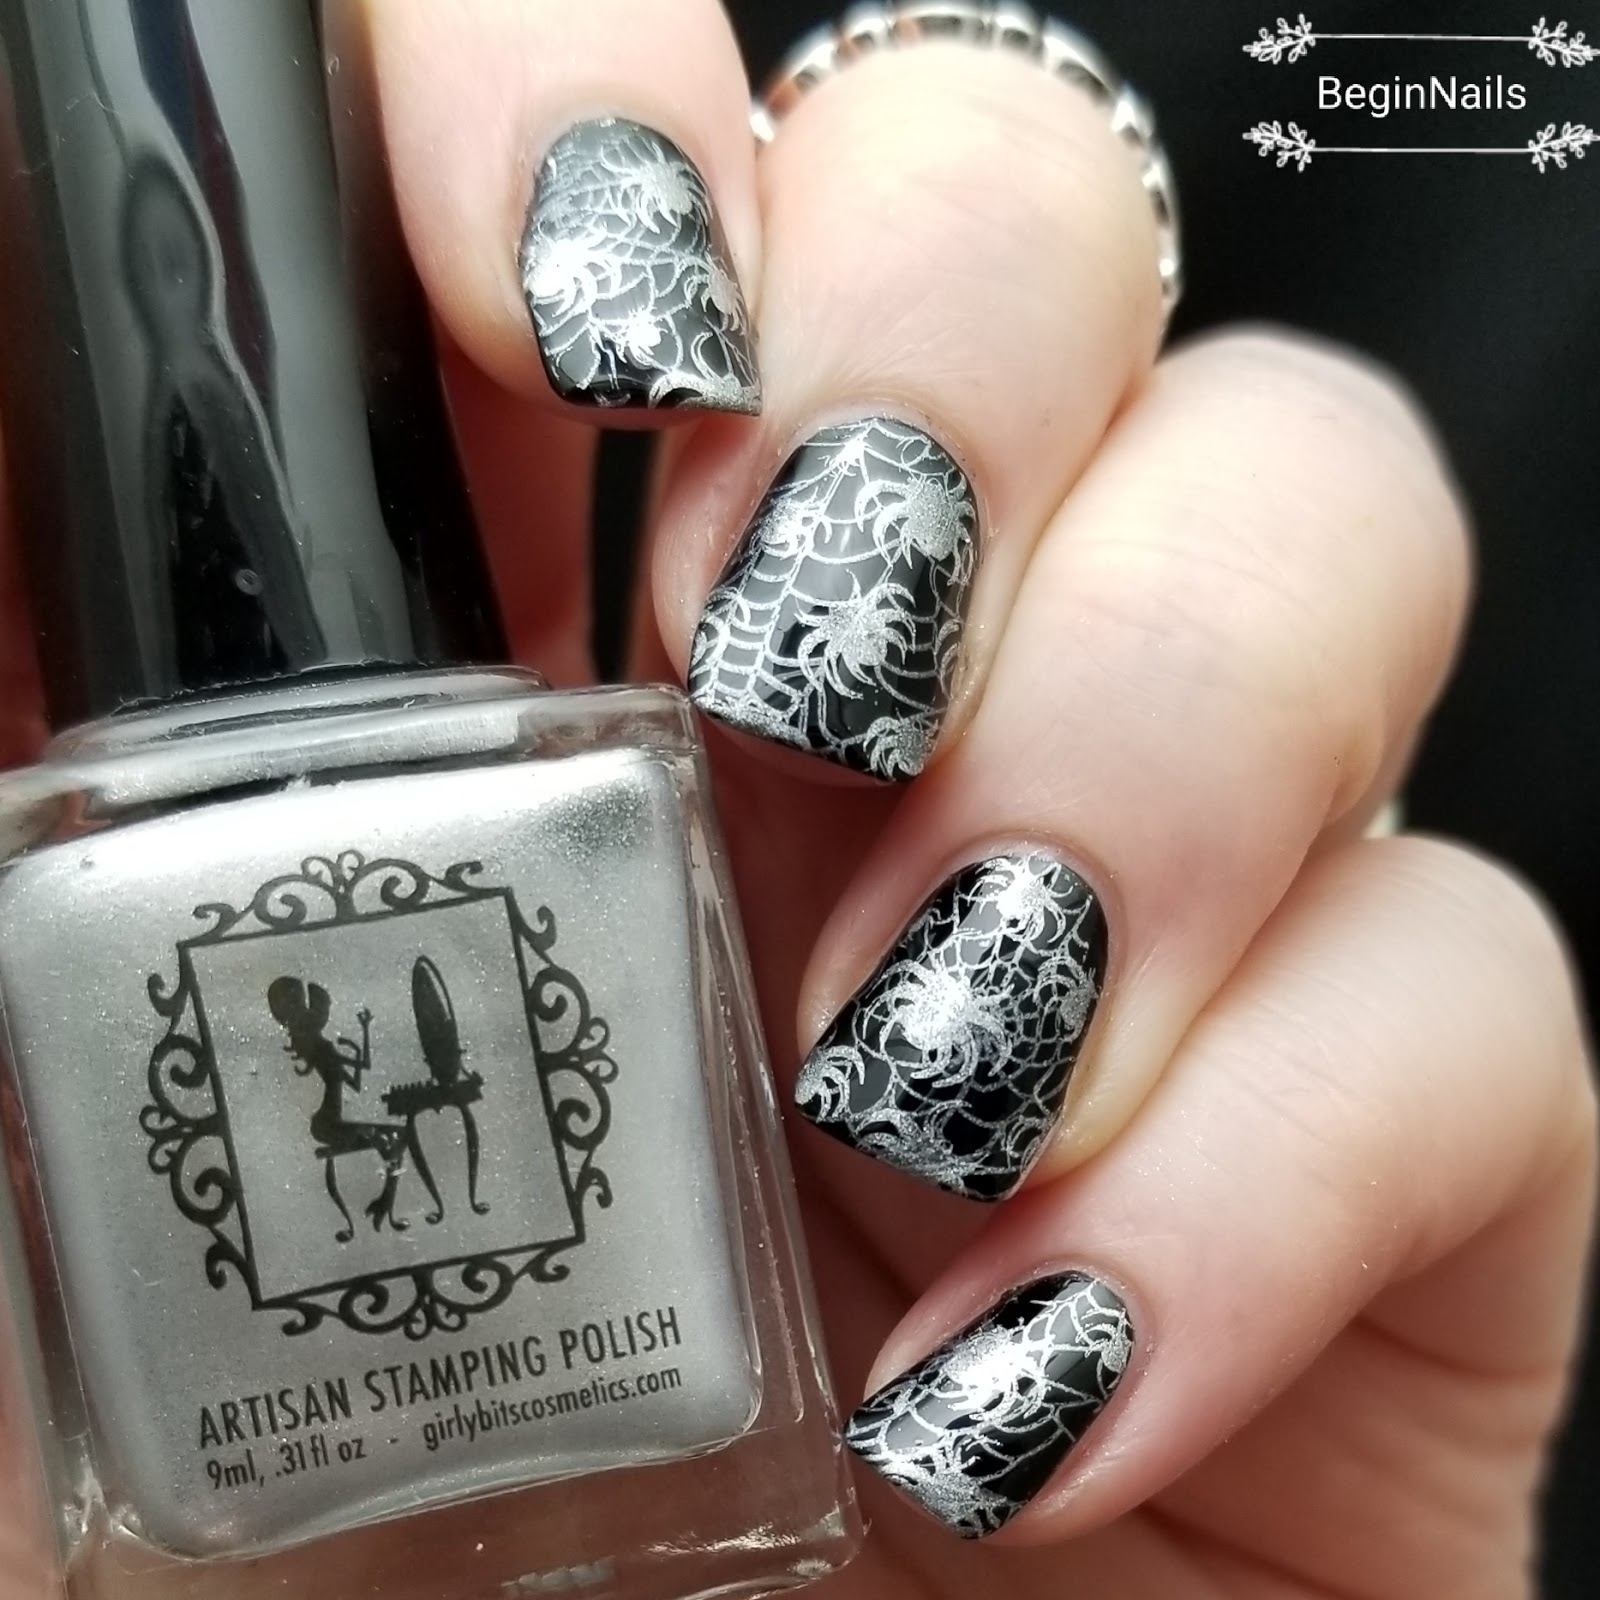 Lets Begin Nails It Girl Nail Art Ig121 Plate Review Part 2